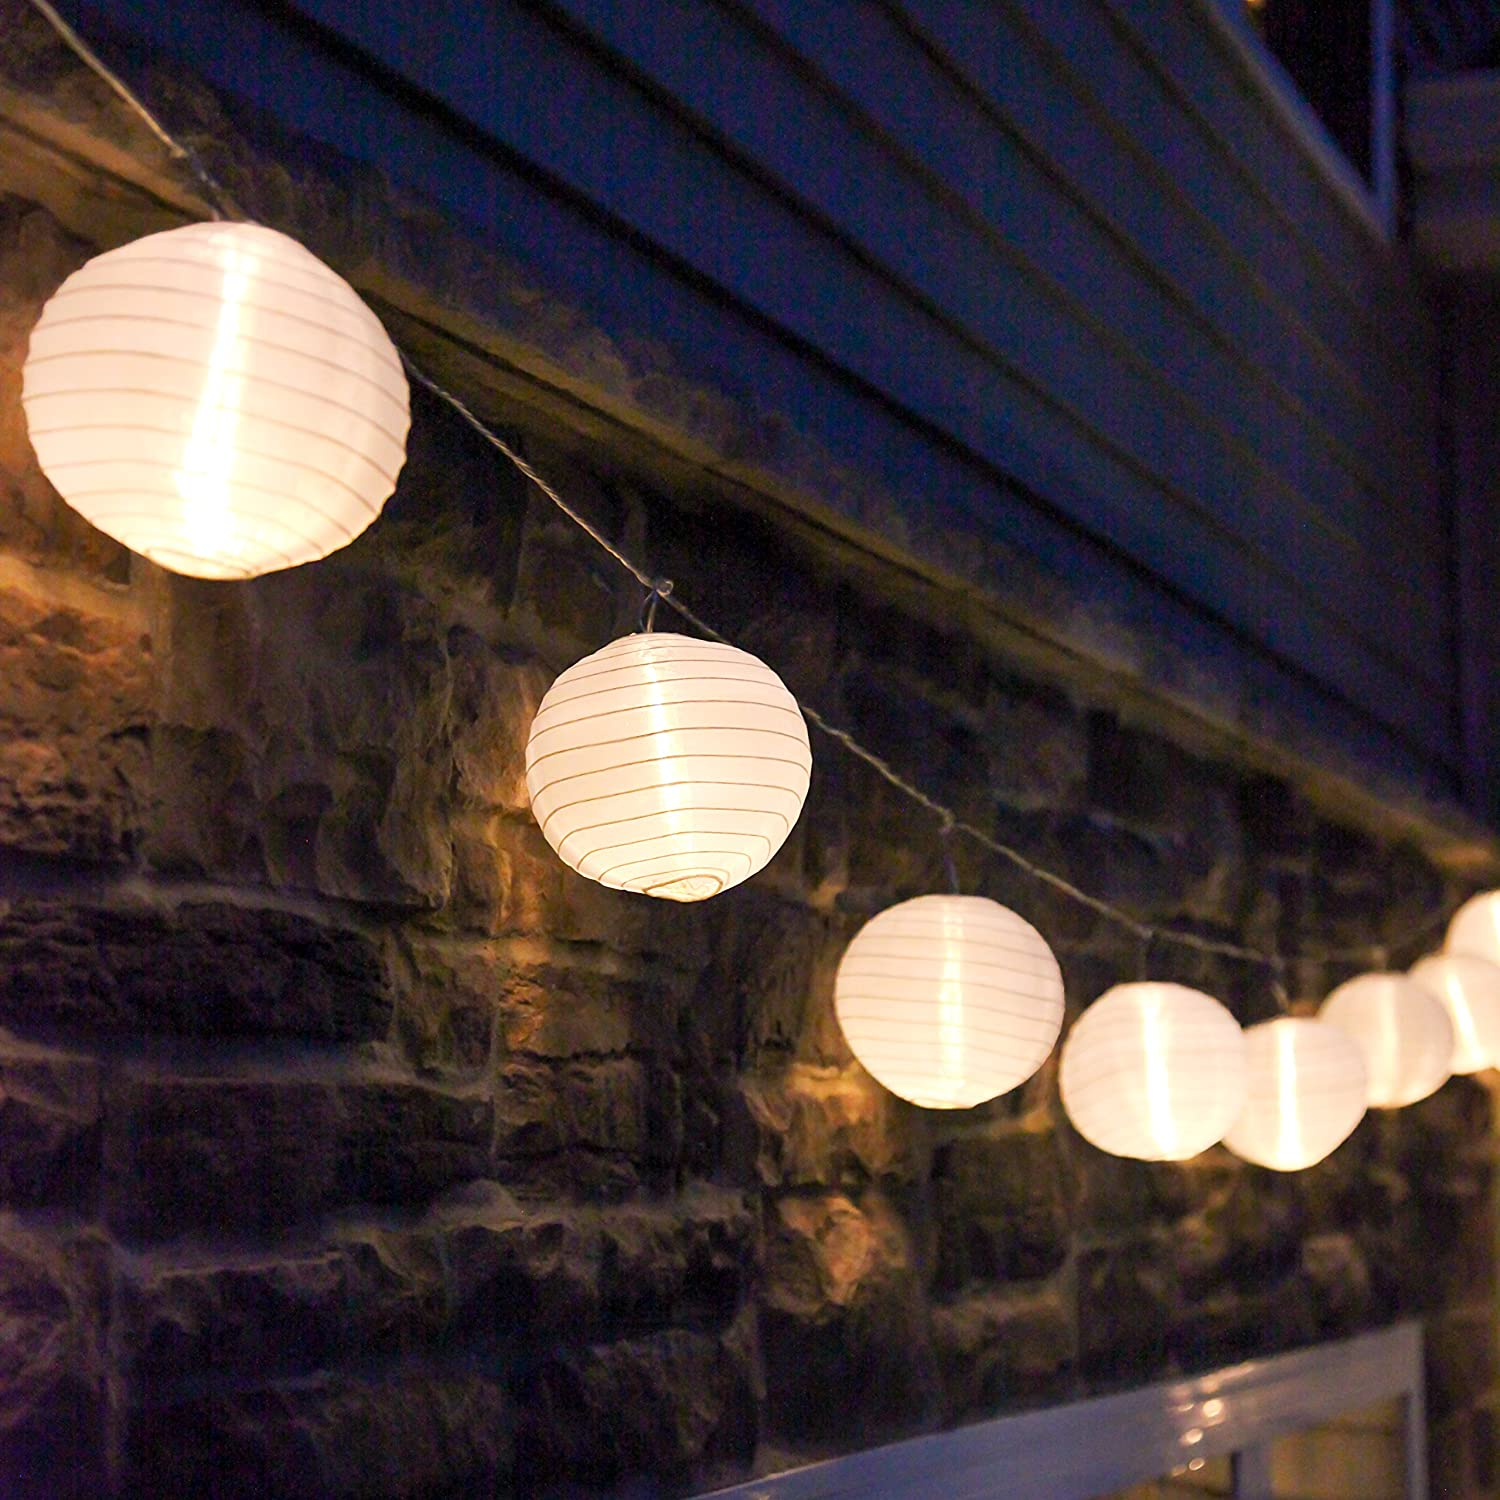 10 ft. White Outdoor String Light, 10 Mini Lanterns, 1 Plugin ...